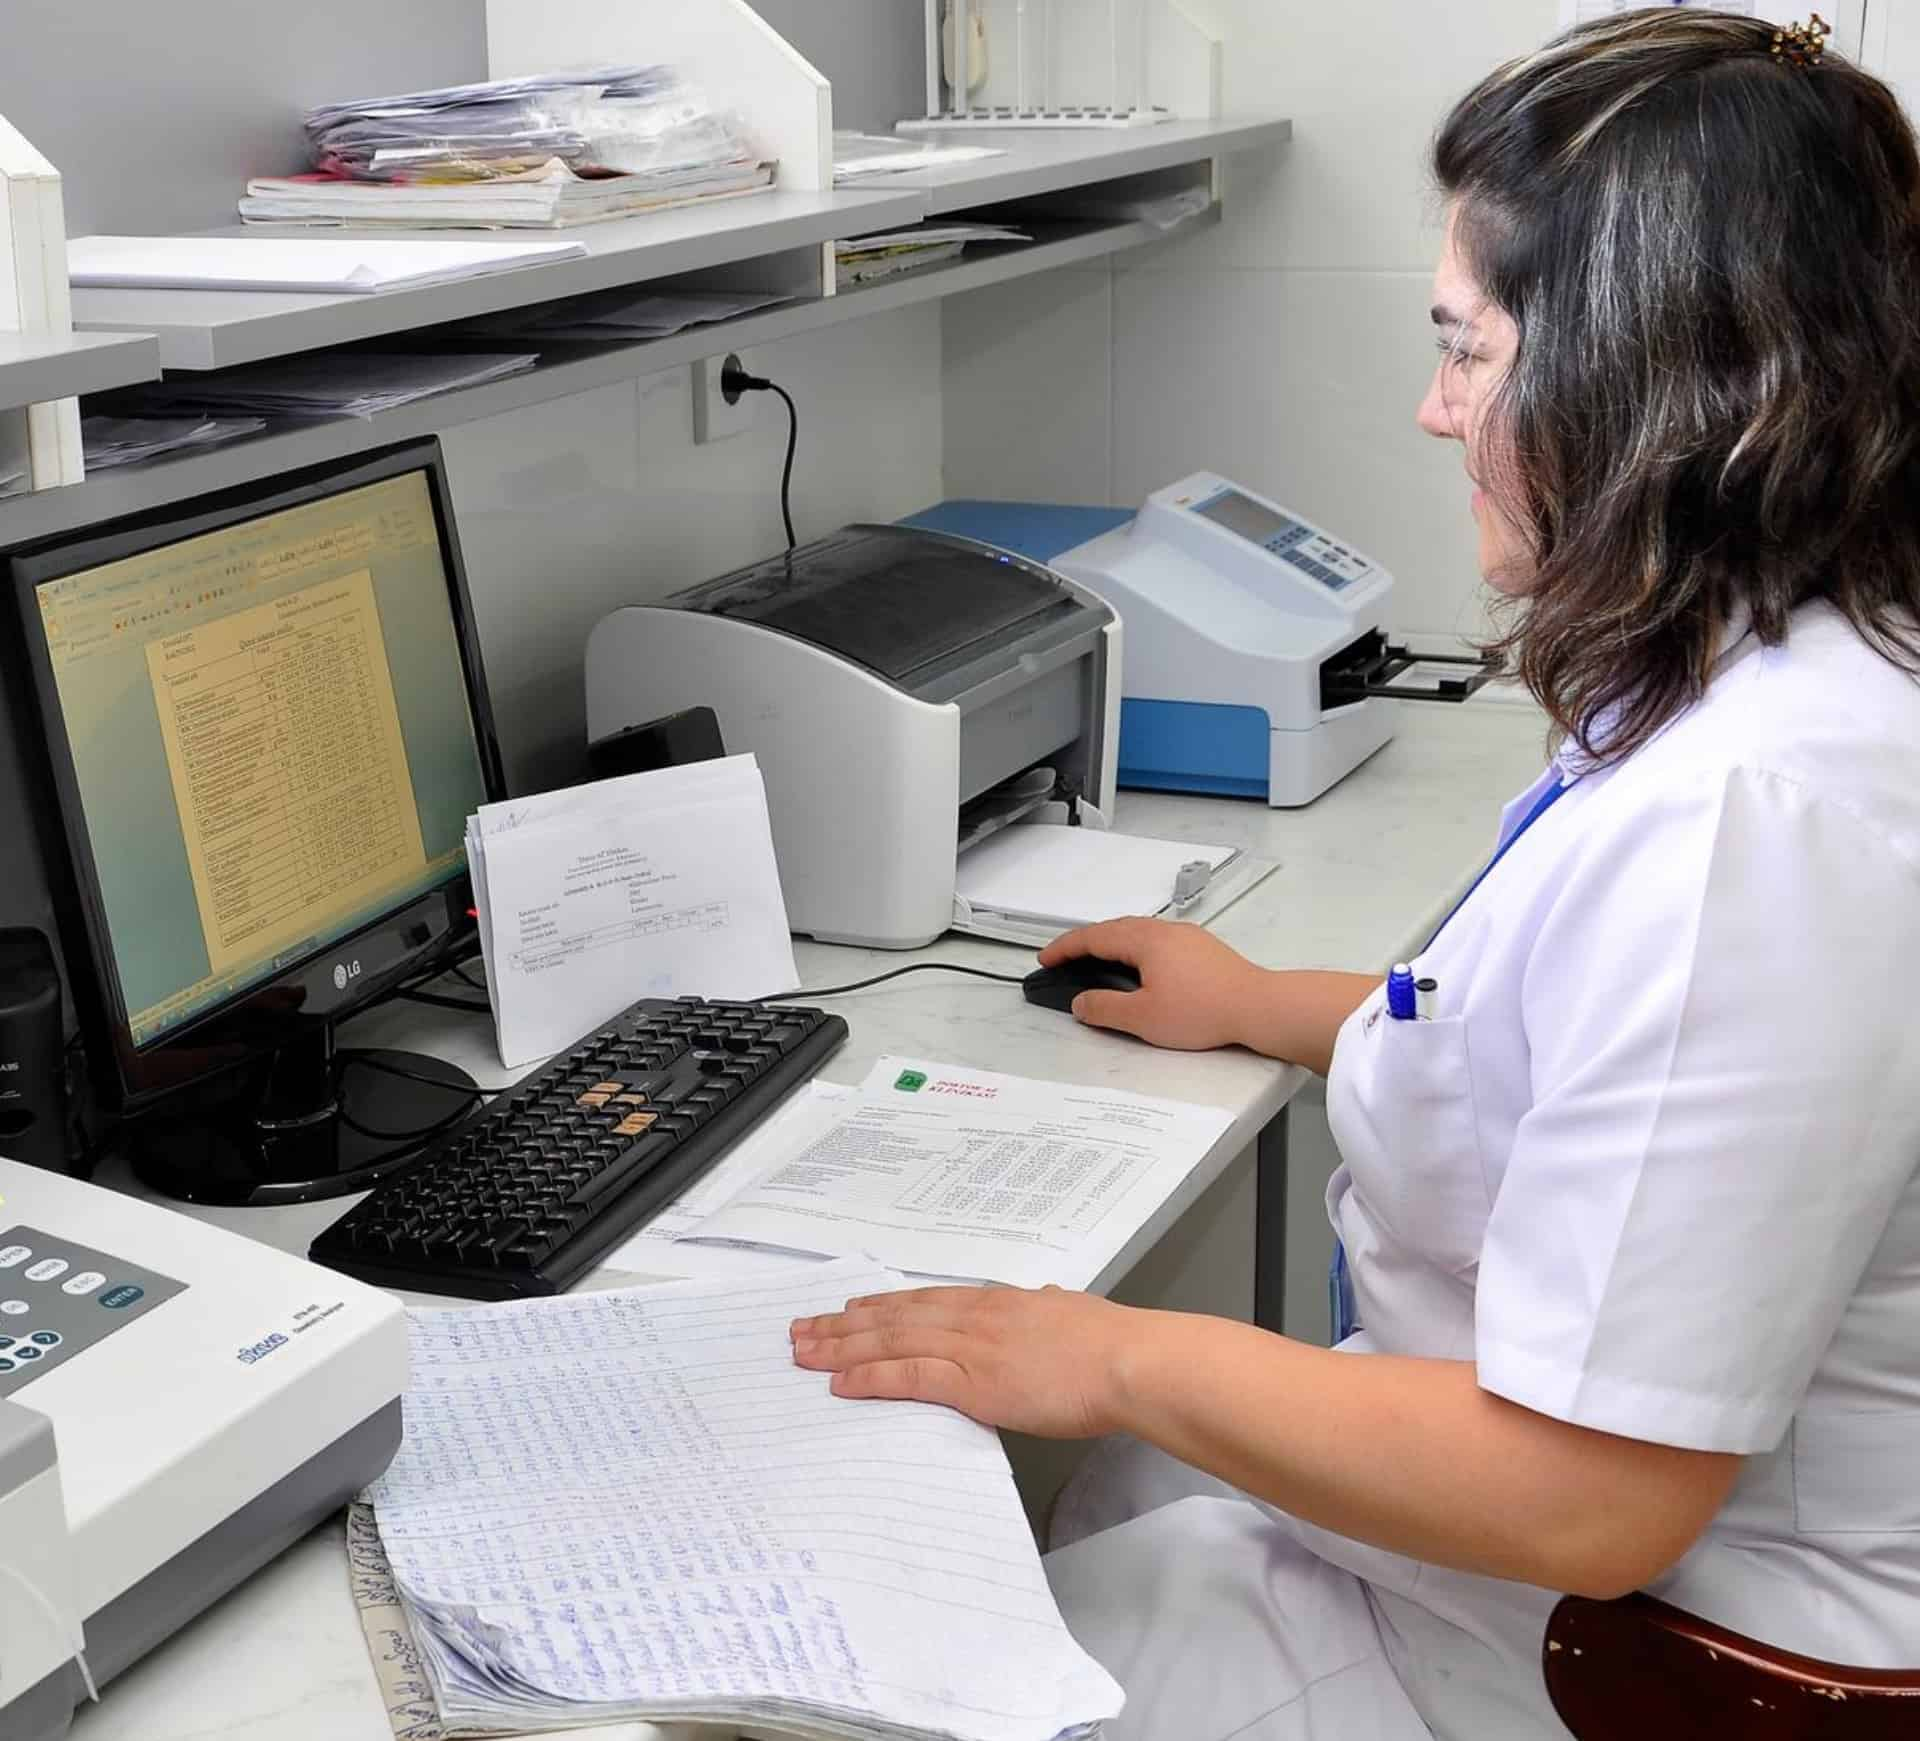 Doctor typing in protected health information at a computer in a medical facility.